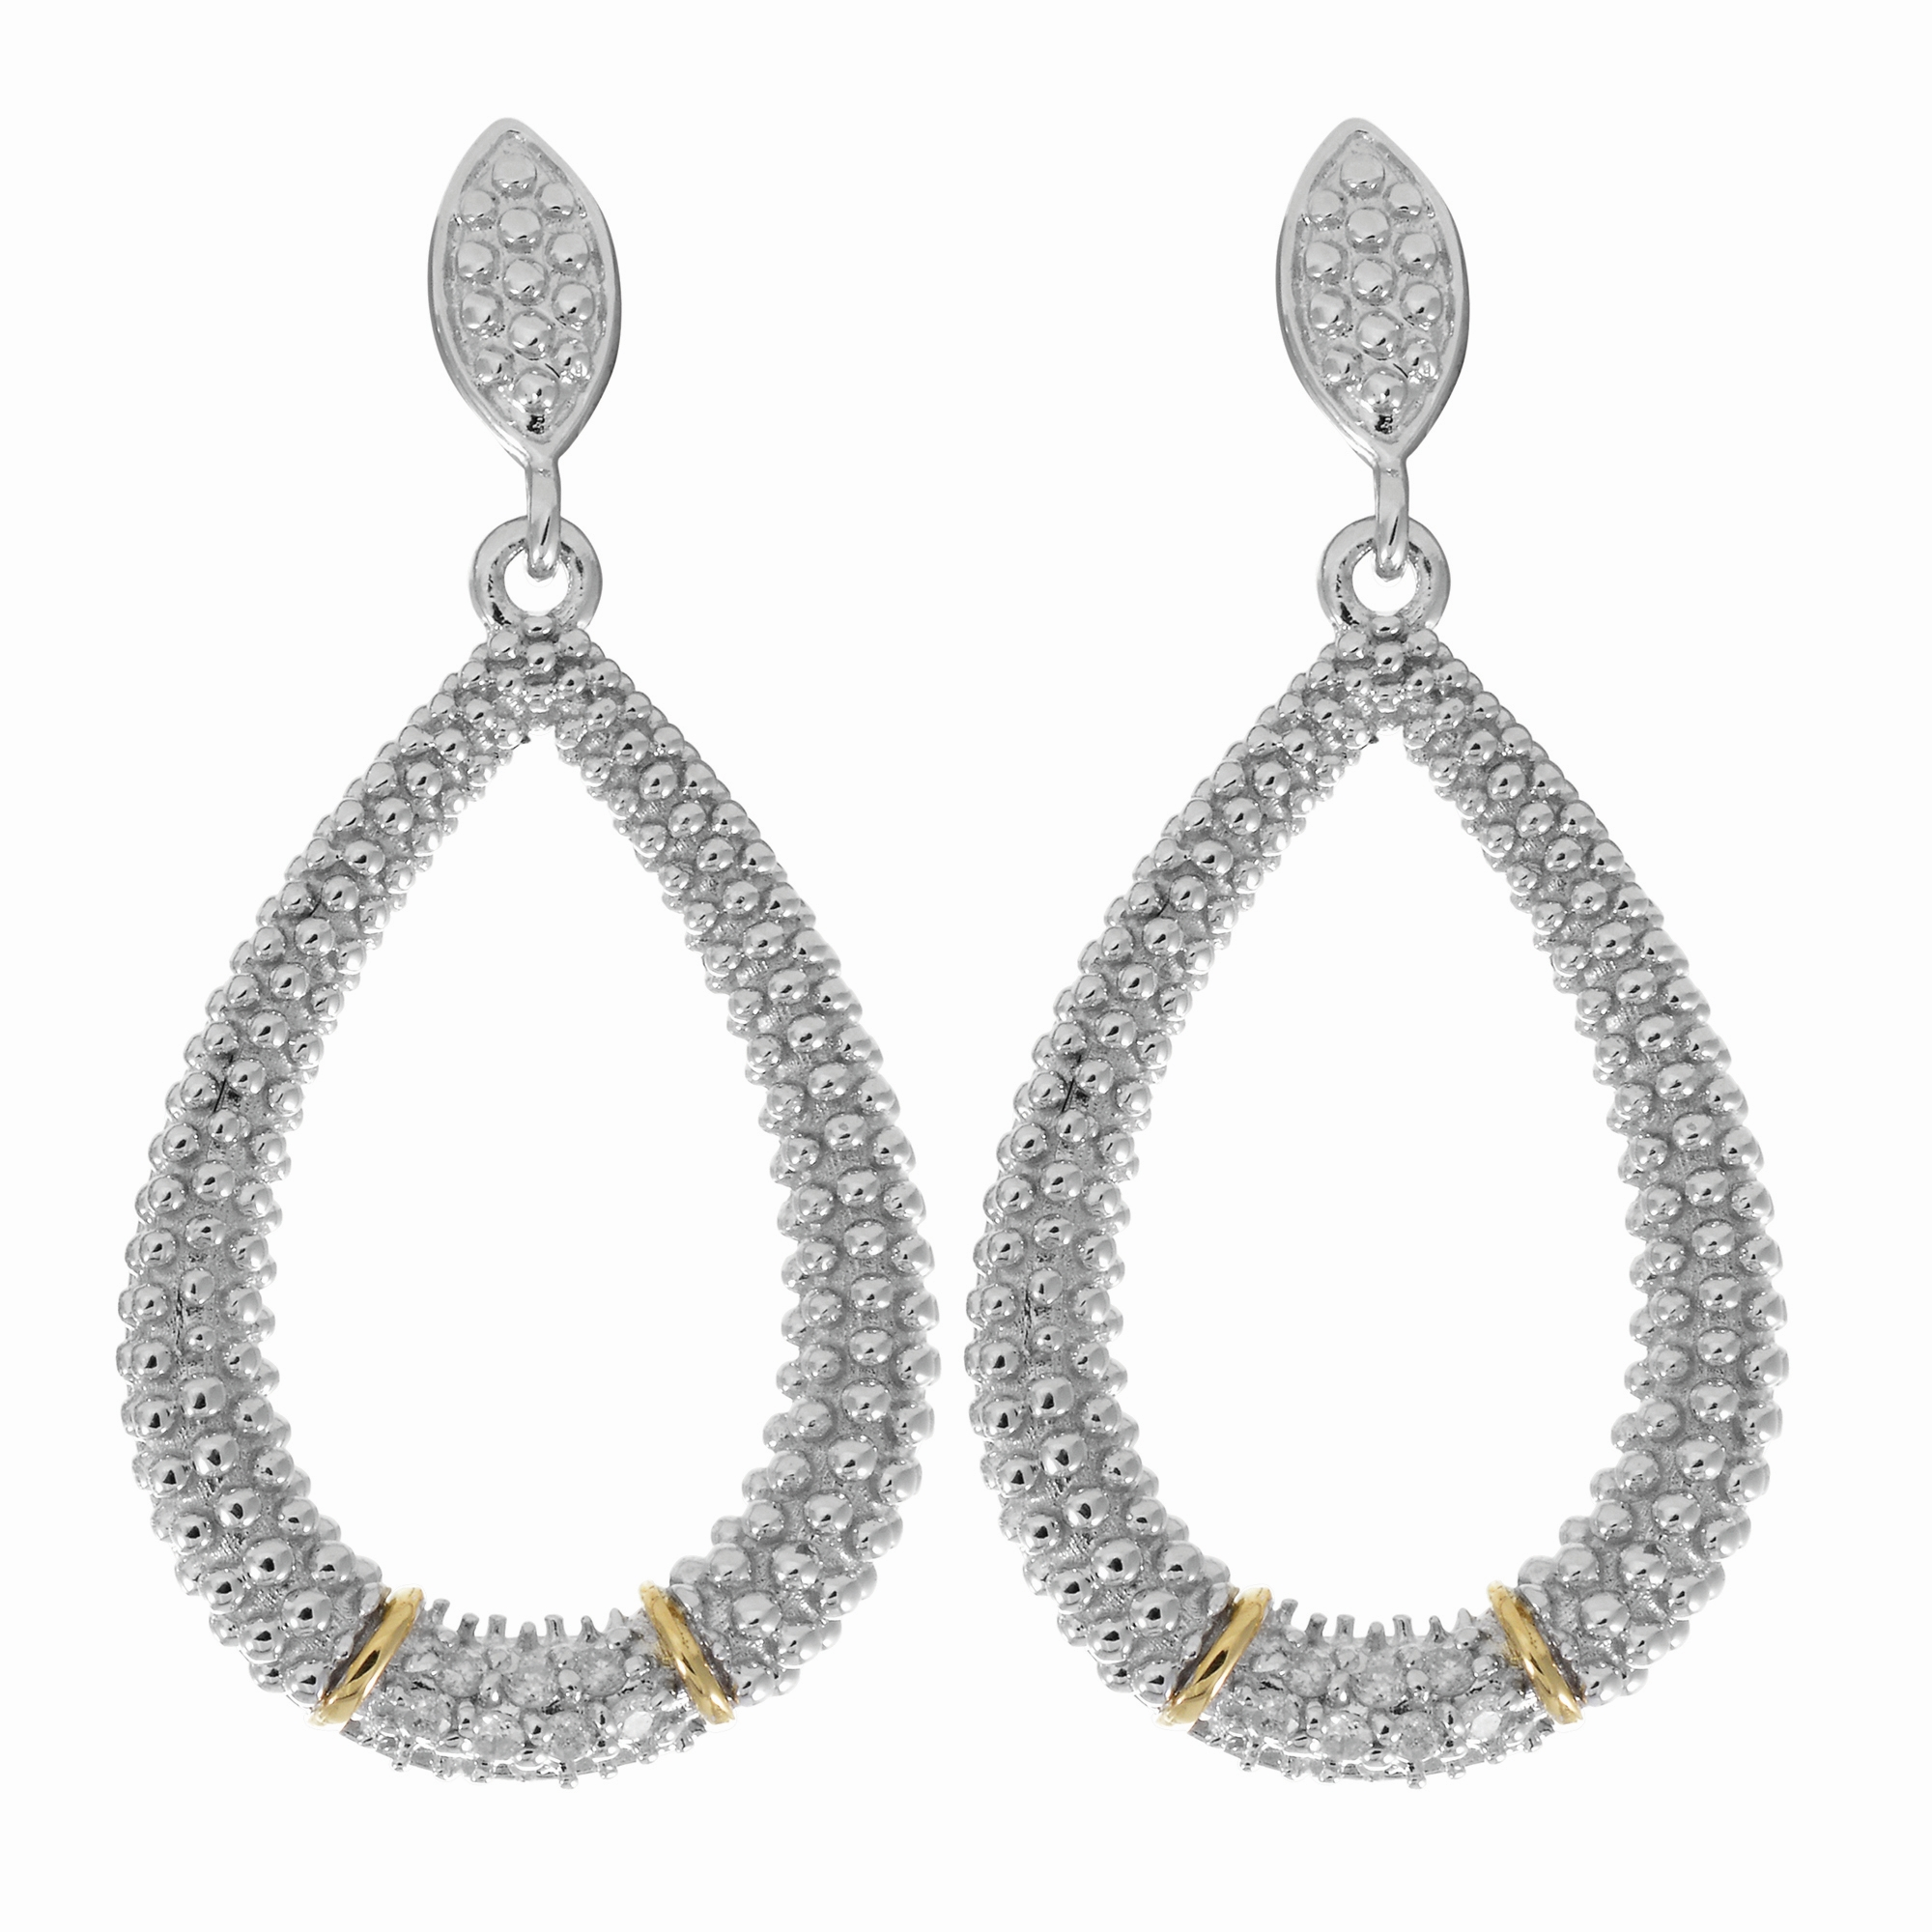 18K Yellow & White Gold Earring James Wolf Jewelers Mason, OH